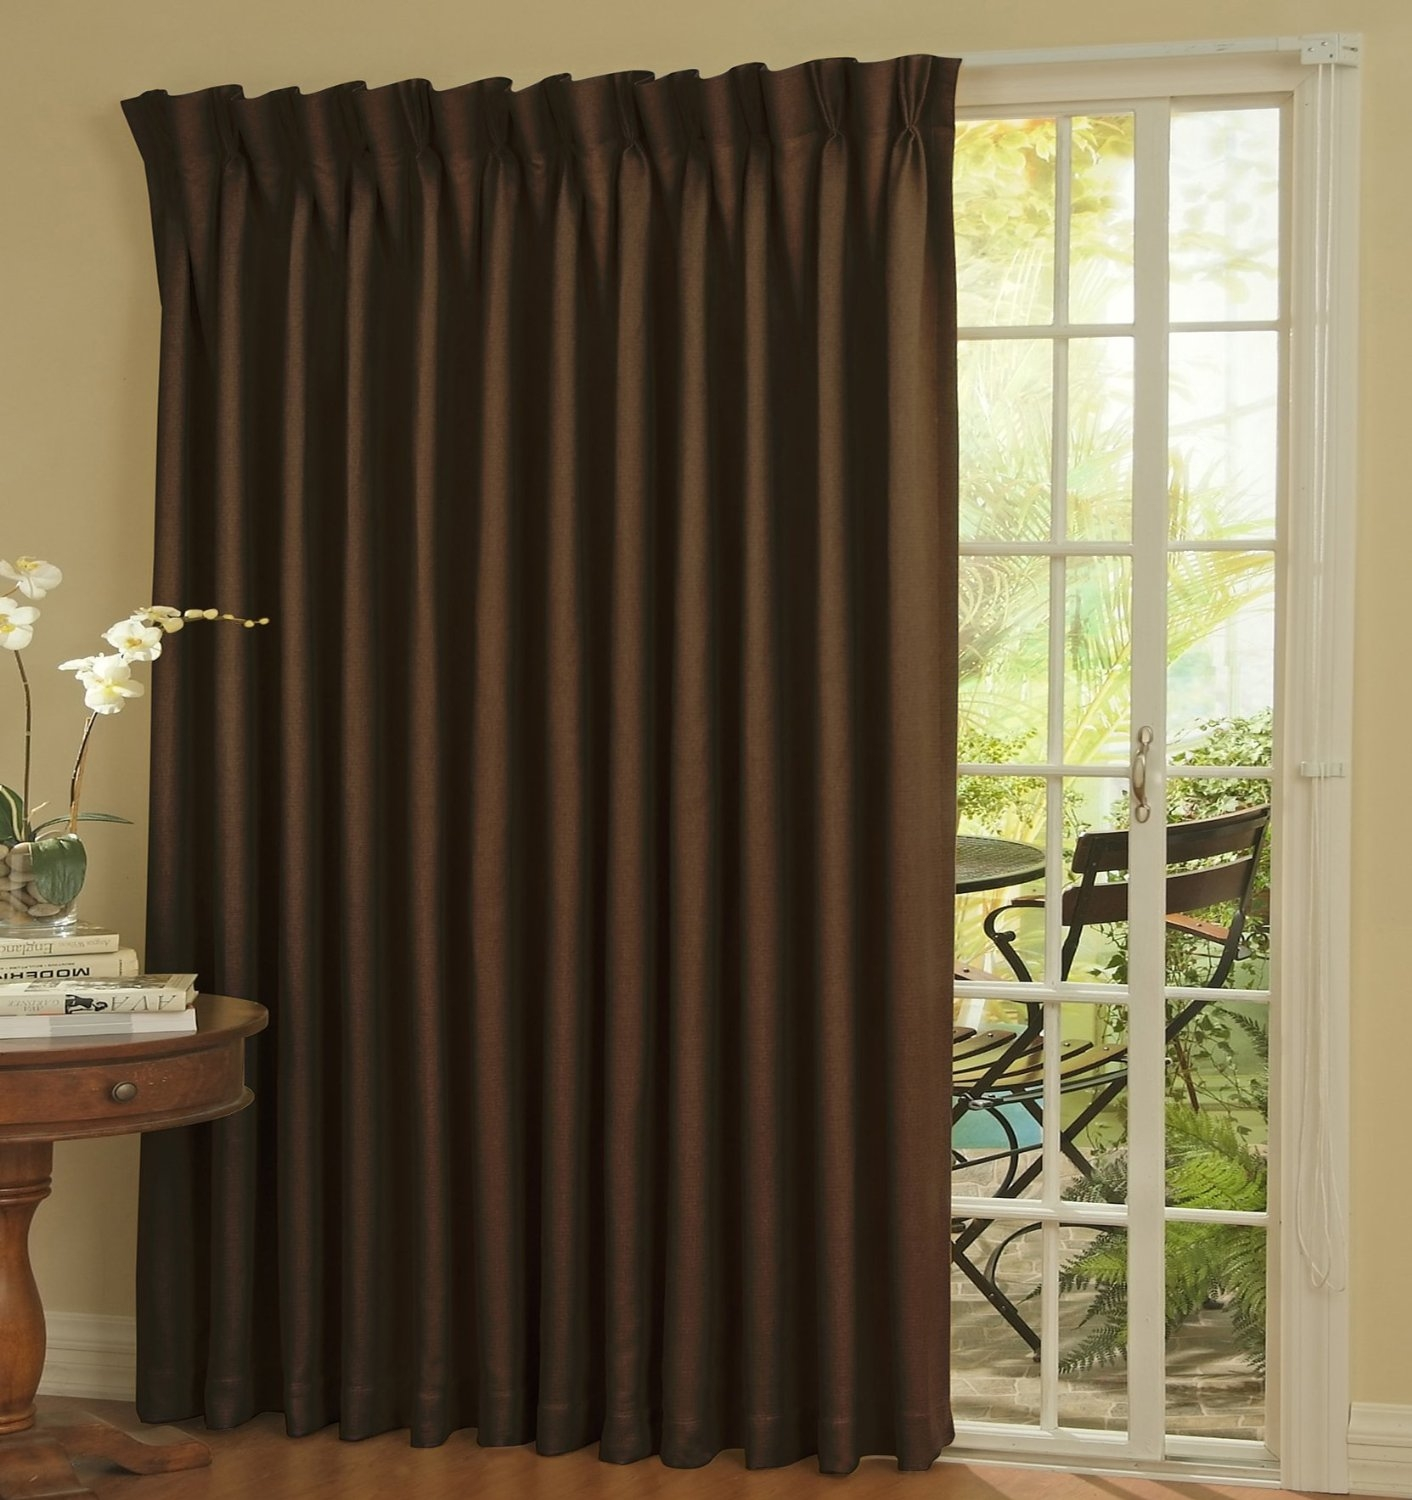 Furniture Extra Long Curtains With Brown Curtain And Brown Wooden With Extra Long Door Curtain (Image 9 of 15)